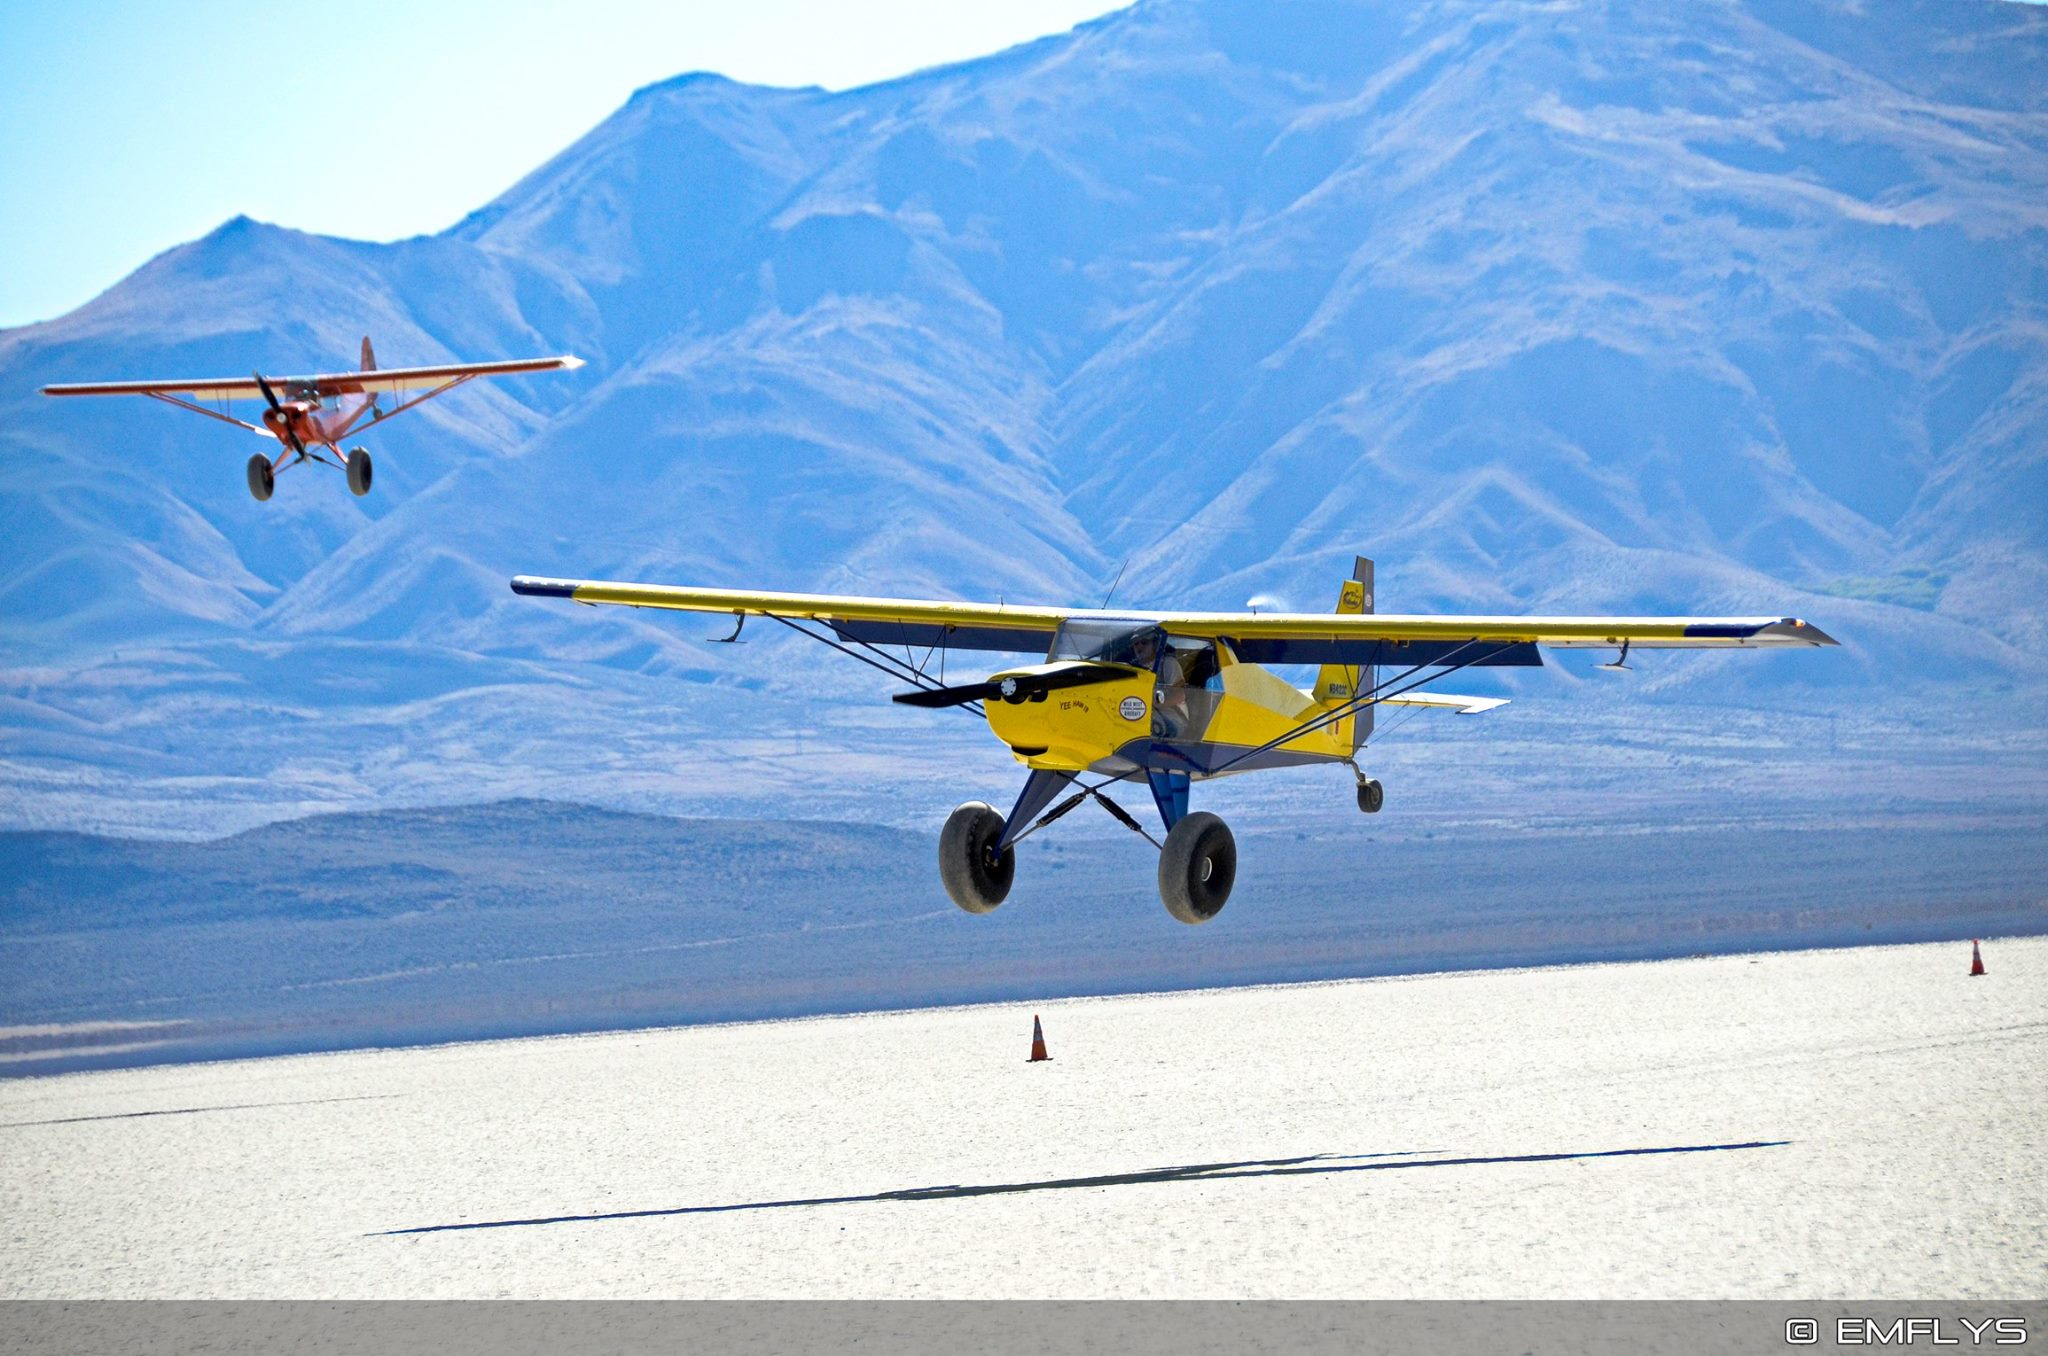 Home of STOL Drag Racing - At Dead Cow Lakebed